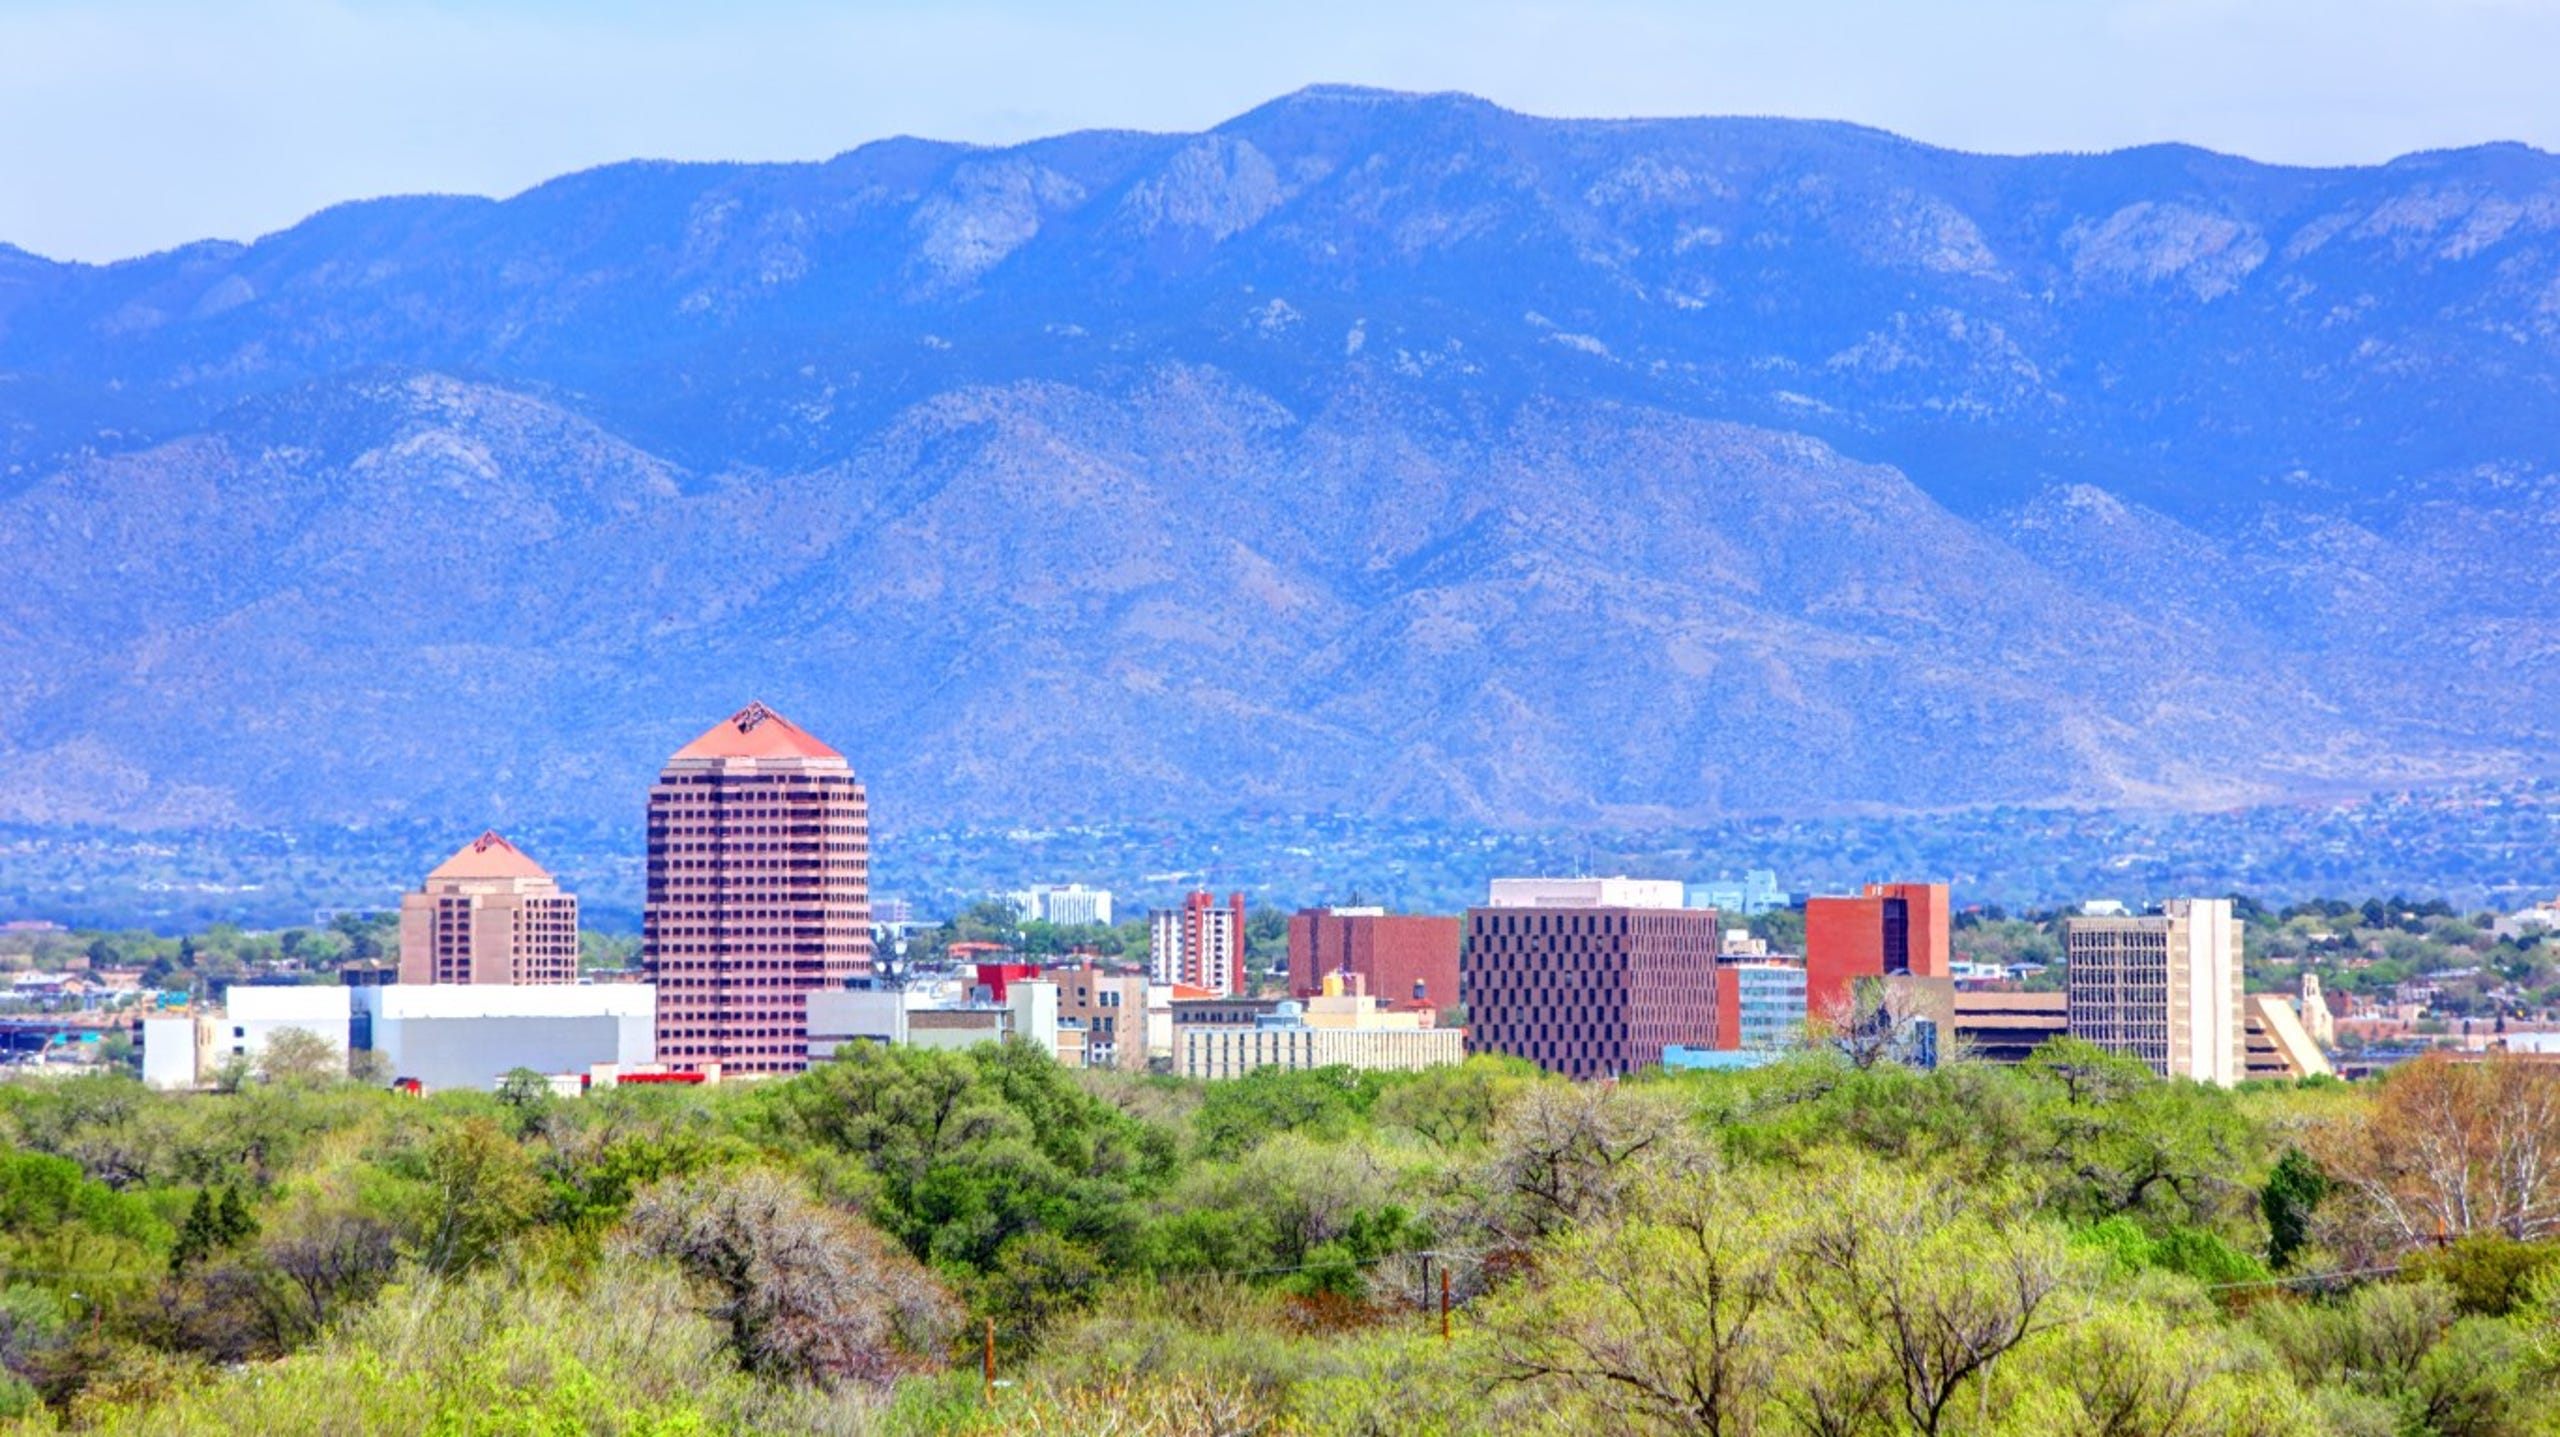 <strong>3. Albuquerque, New Mexico</strong><br /> <strong>&bull; Preschool enrollment:</strong> 41.5%<br /> <strong>&bull; High school graduation rate:</strong> 70.3% (lowest 10%)<br /> <strong>&bull; Pop. with access to areas for exercise:</strong> 84.8%<br /> <strong>&bull; Property crime rate:</strong> 5,499 crimes per 100,000 people (highest 10%)